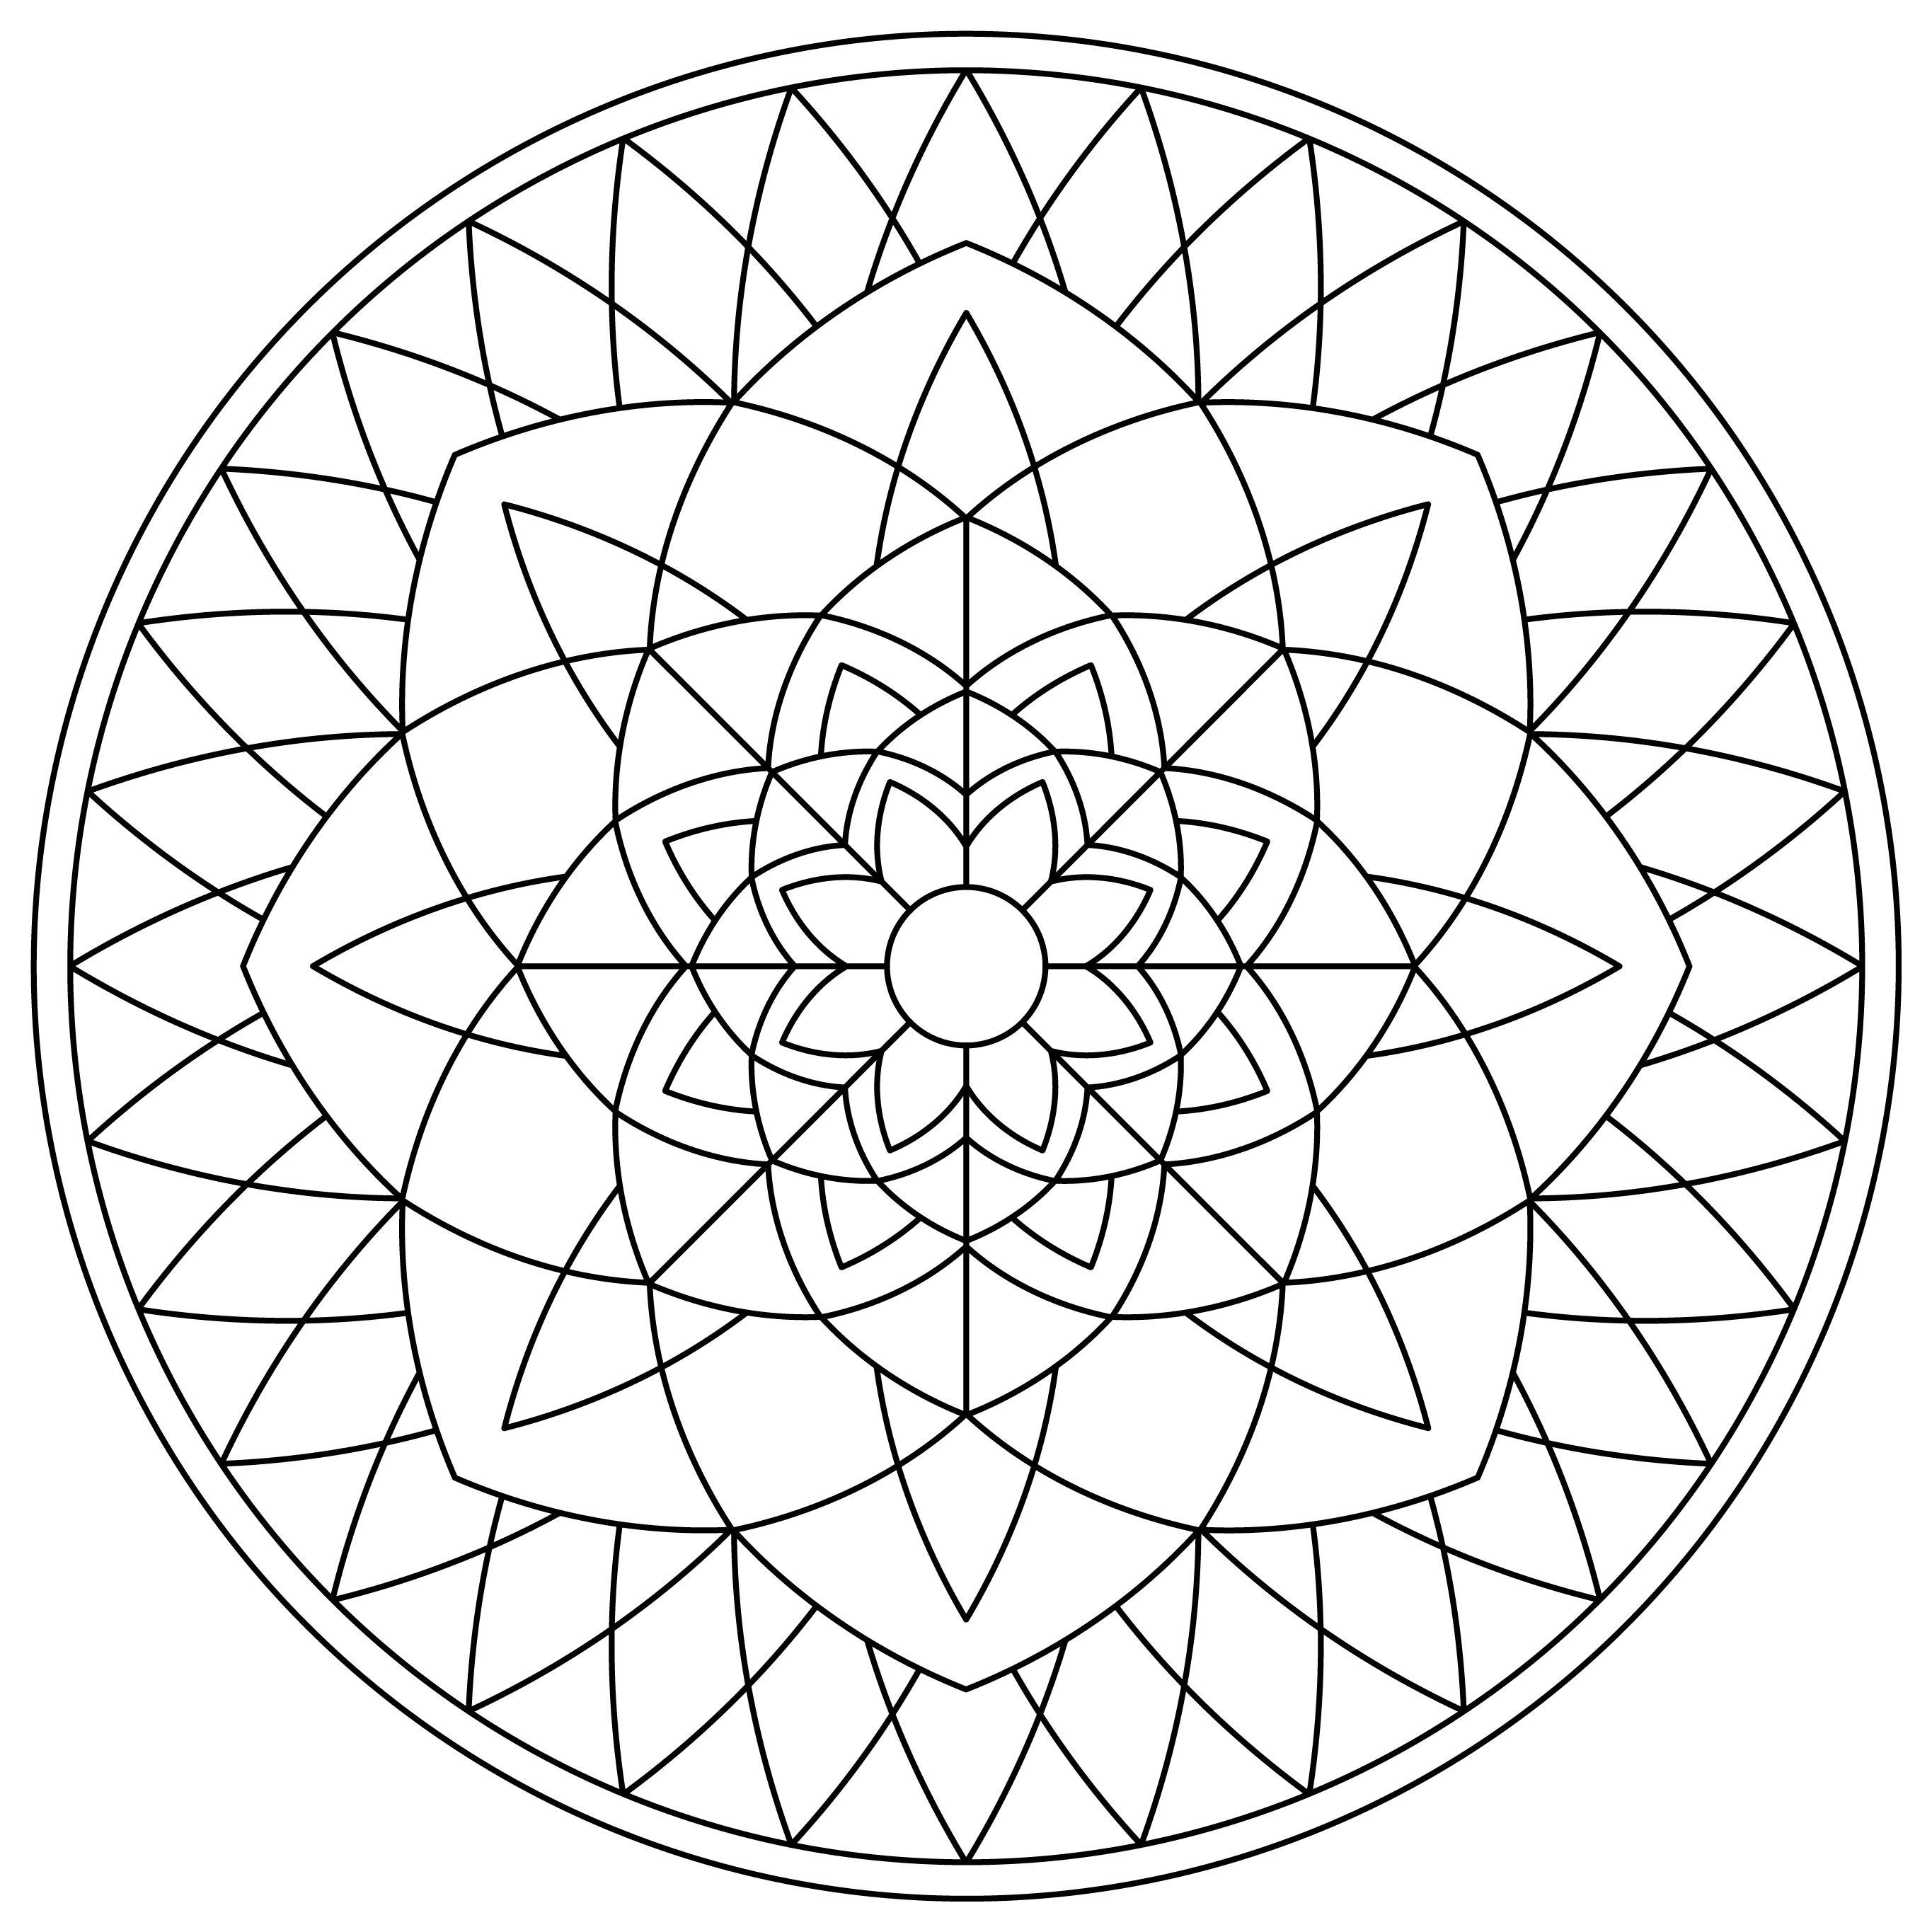 Mandala Monday 58 Free Download To Colour In (1)